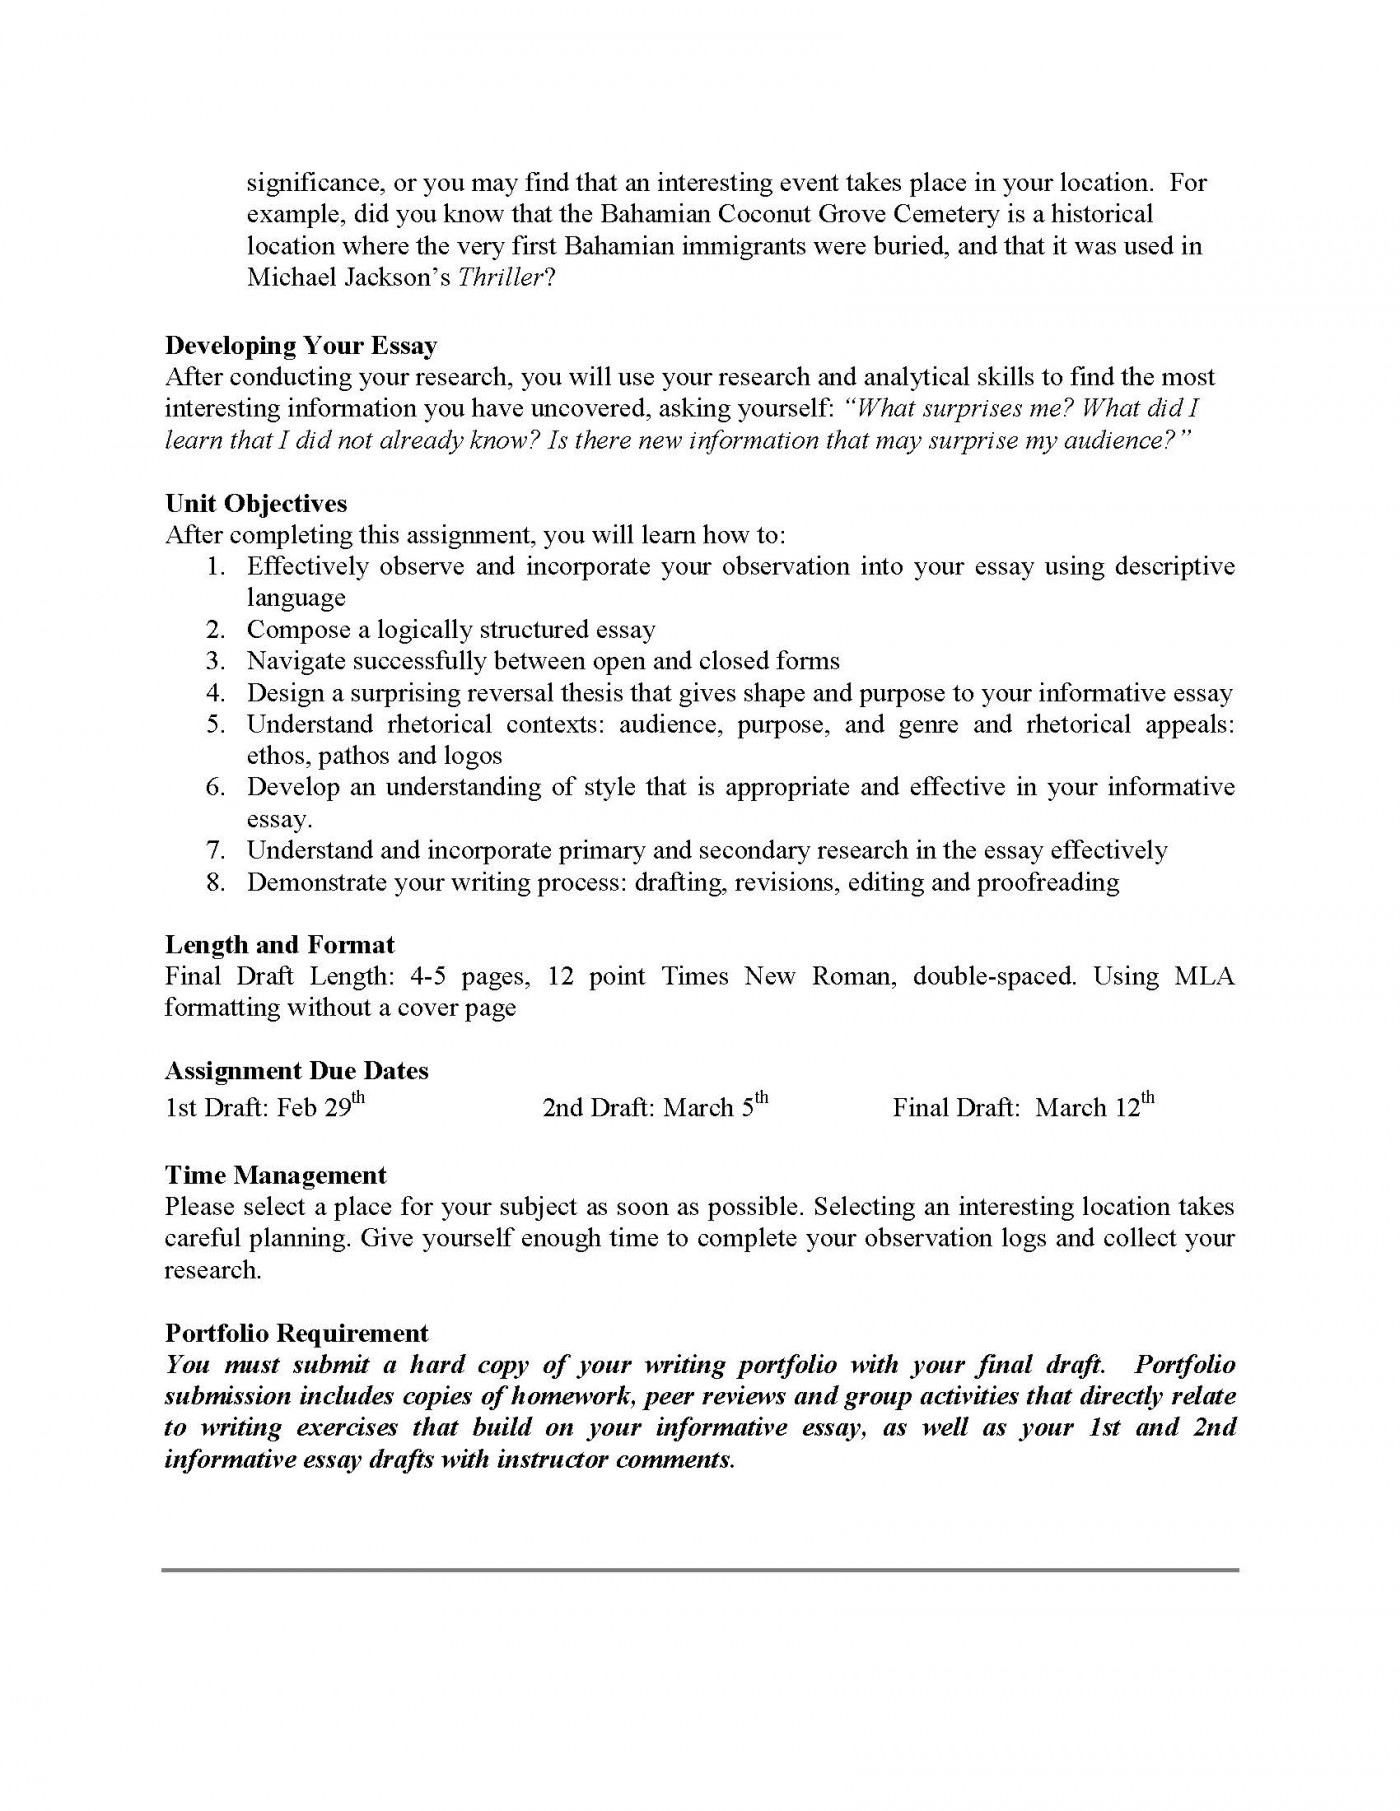 014 Informative Essay Unit Assignment Page 2 Dreaded Outline Template Pdf Topics For 5th Grade Rubric Fsa 1400